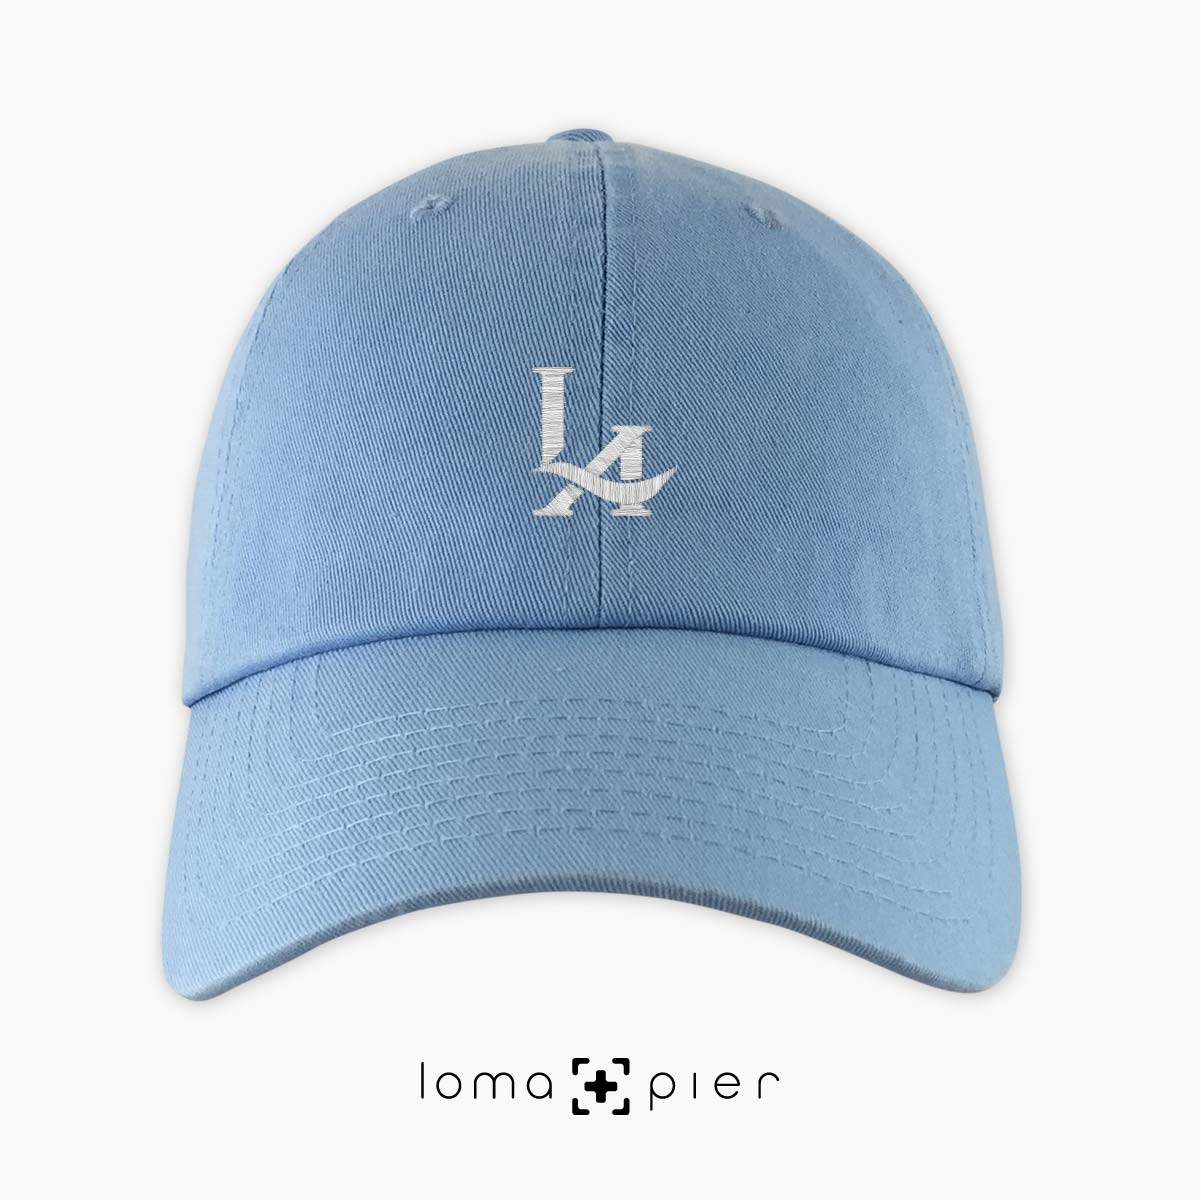 a39d0d4e9bb los angeles LA logo embroidered on a light blue unstructured dad hat by loma +pier